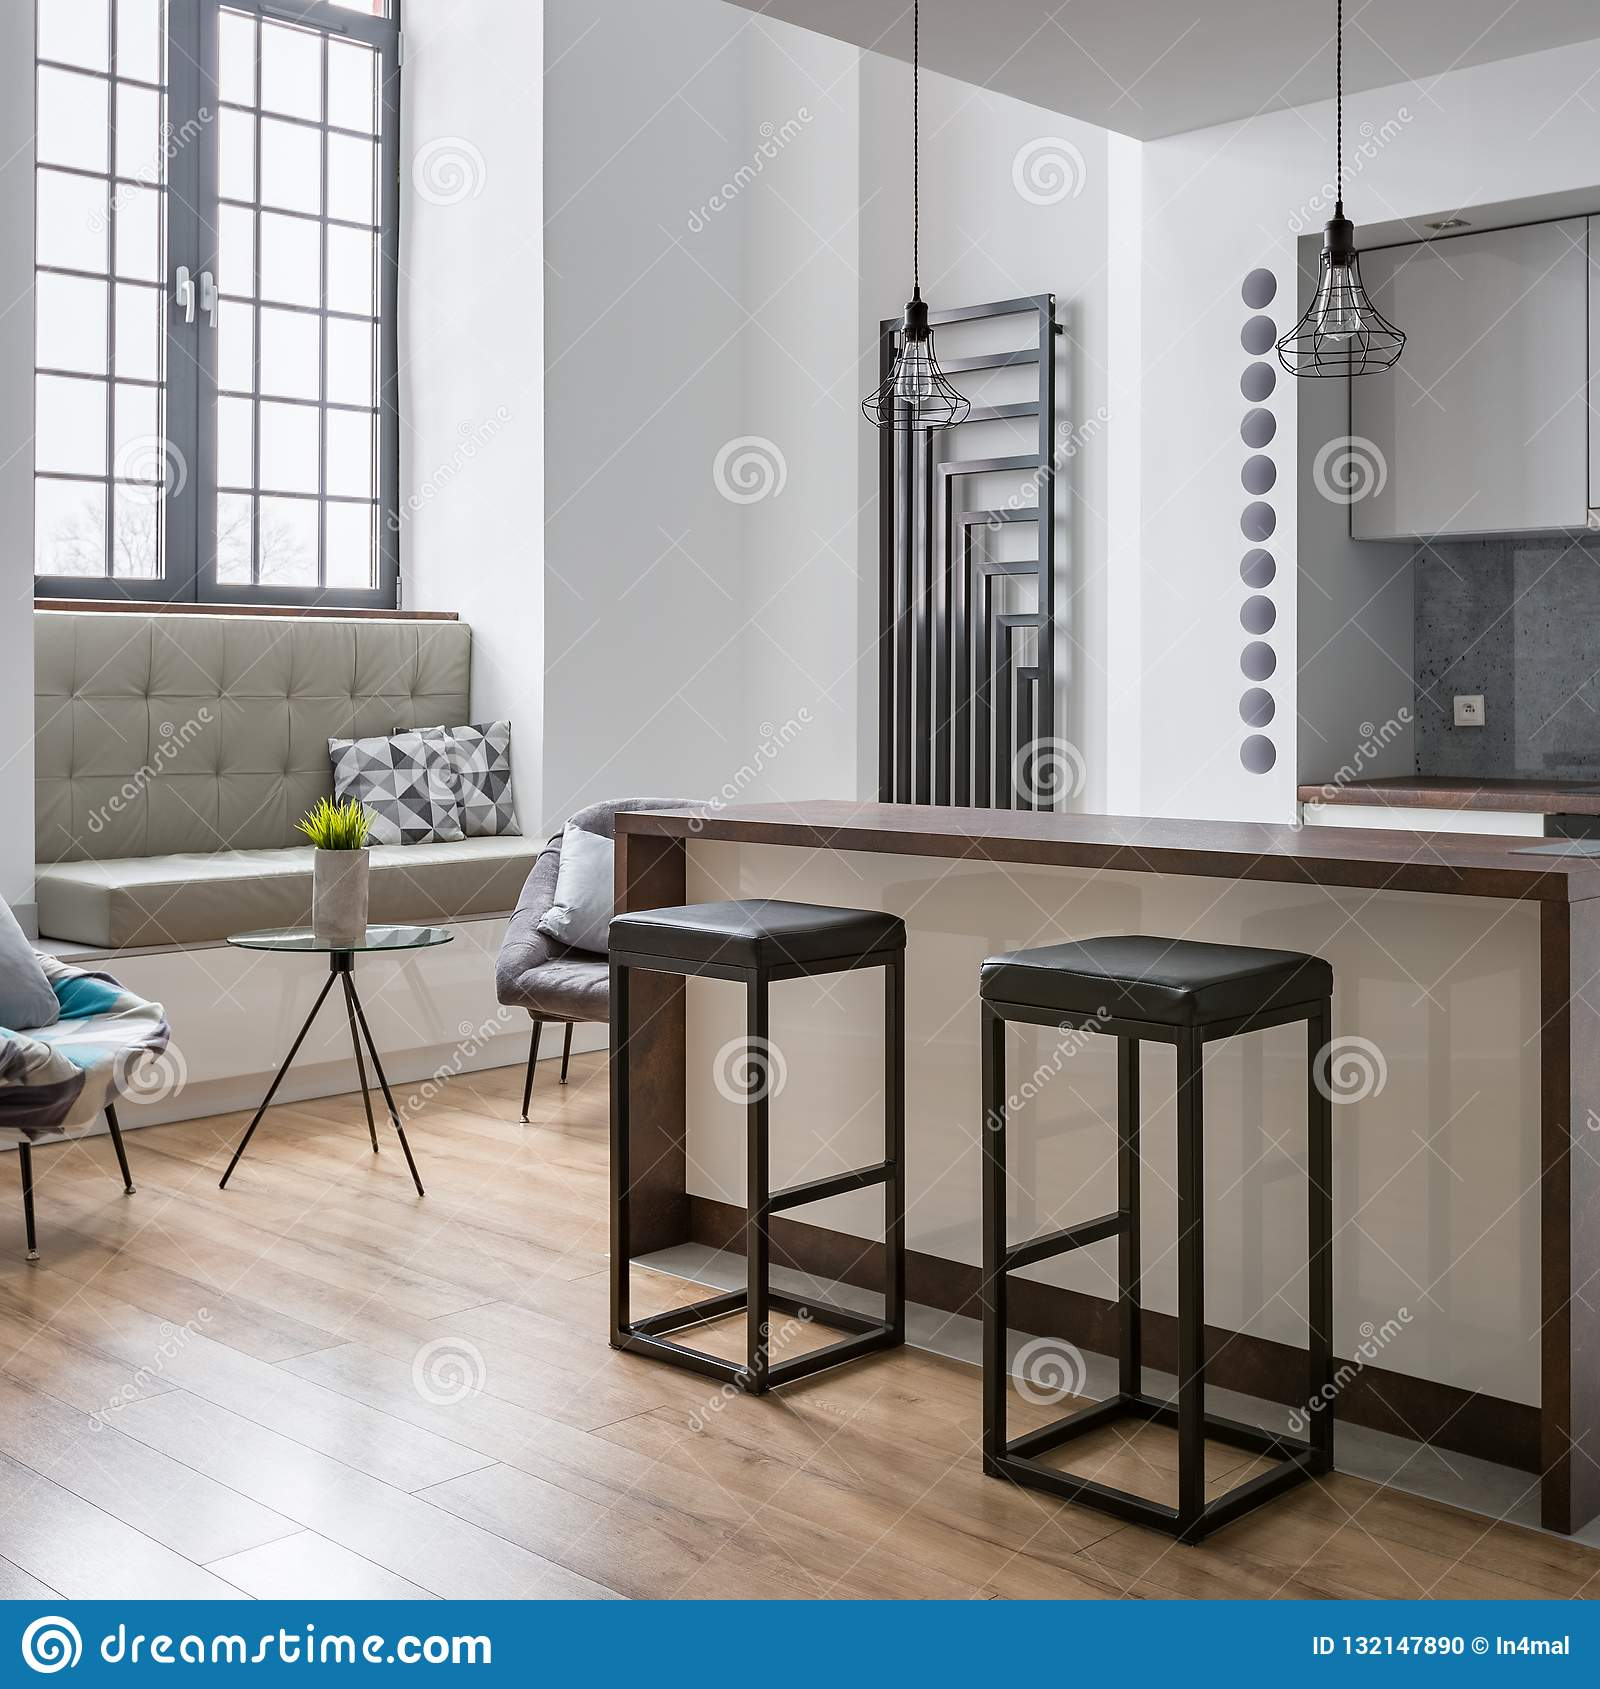 Kitchen Island And Bar Stools Stock Photo Image Of Contemporary Heater 132147890